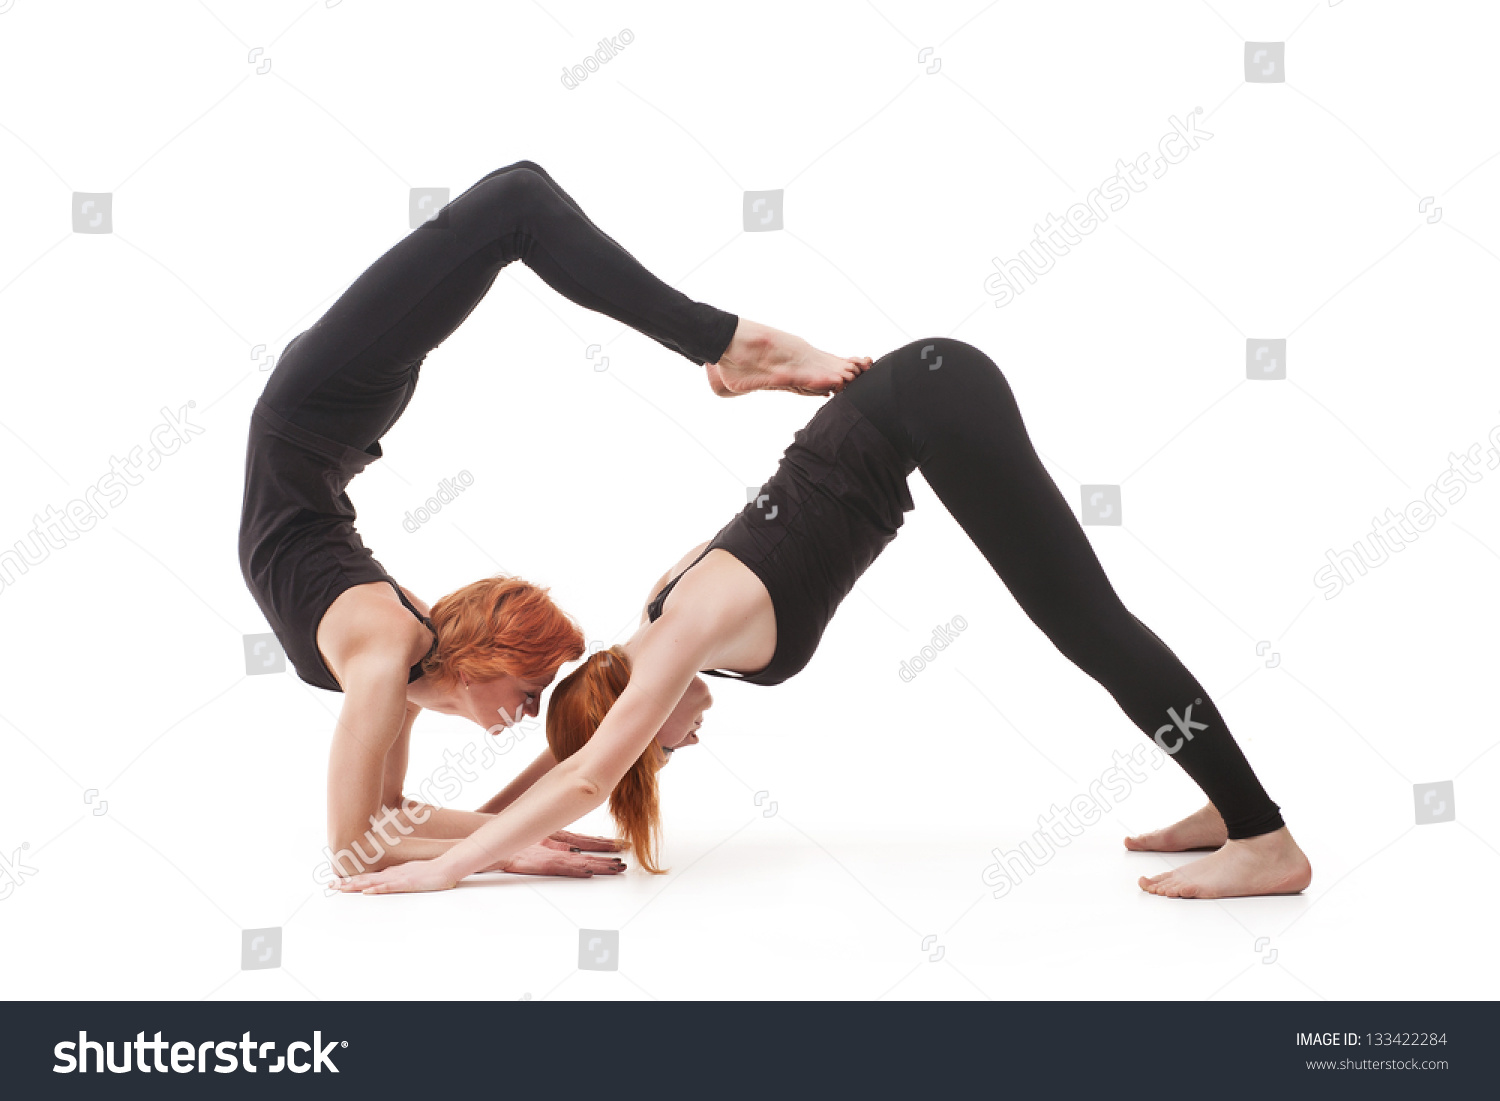 Paired Yoga Two Women Practicing Yoga Stock Photo ...